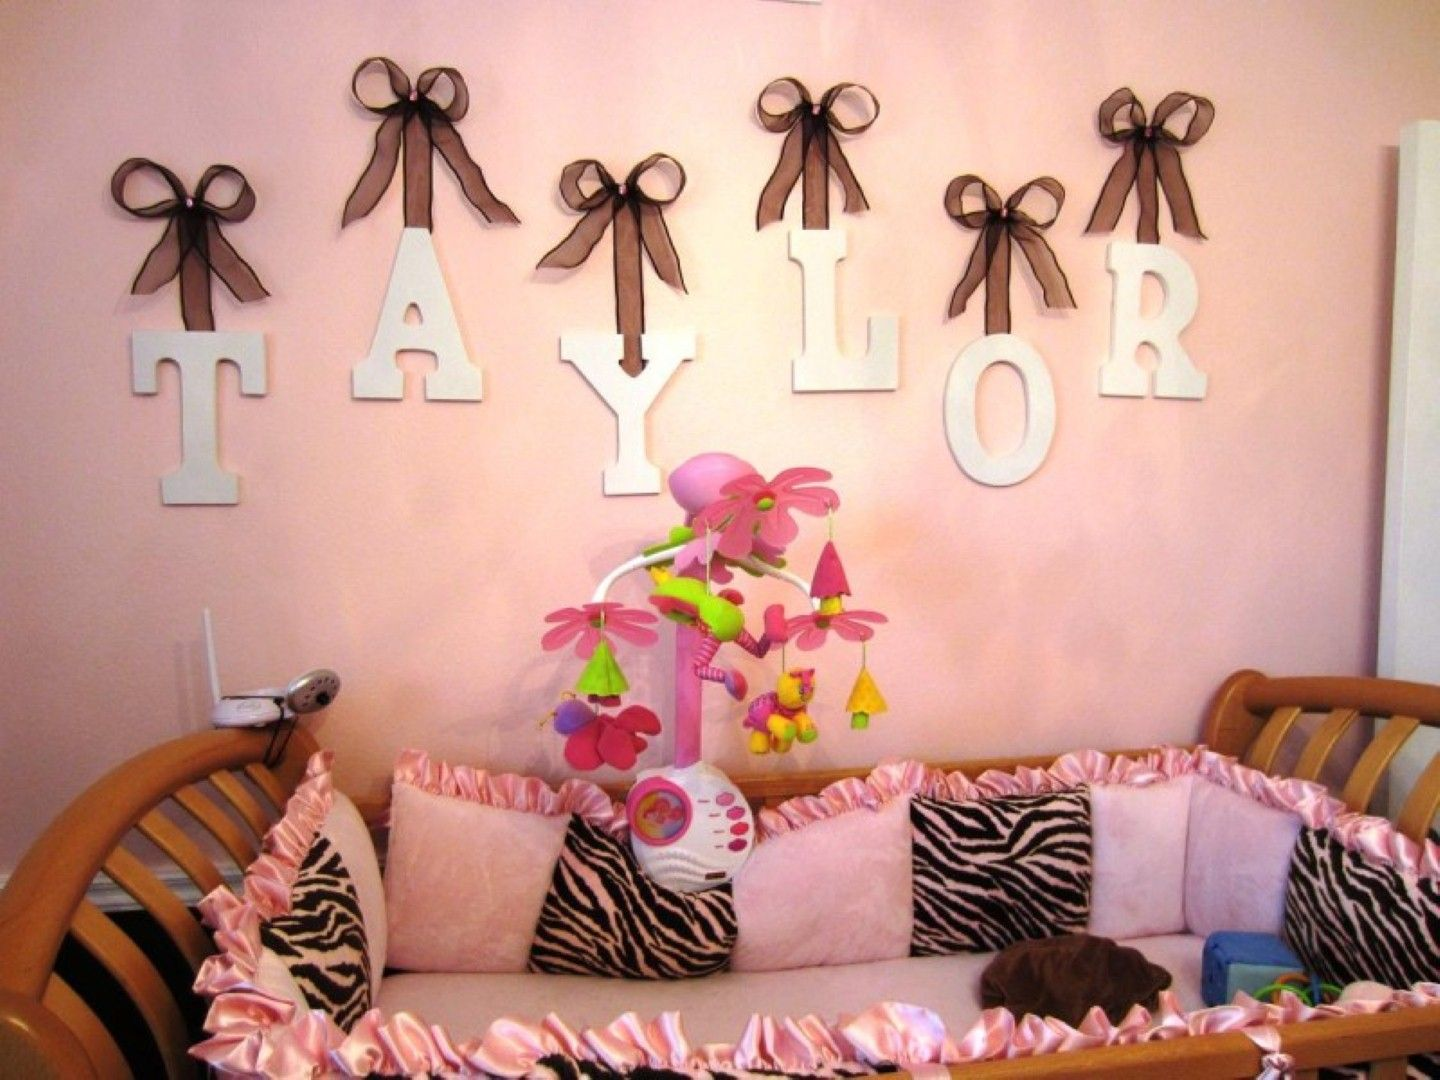 25 best baby girl bedroom ideas on pinterest baby girl room decor toddler bedroom ideas and girl room - Baby Girl Bedroom Decorating Ideas